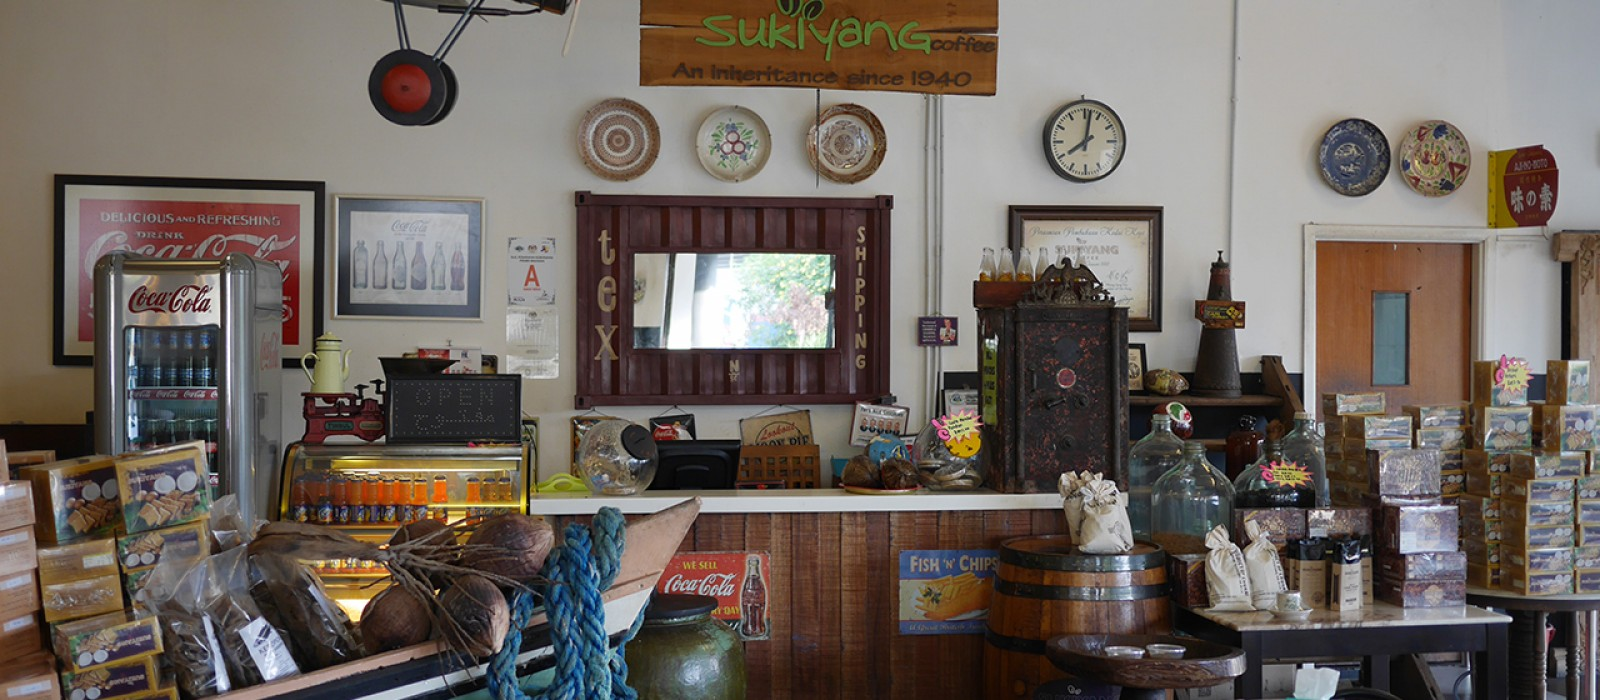 Sukiyang Coffee by Hai Peng, Kemaman